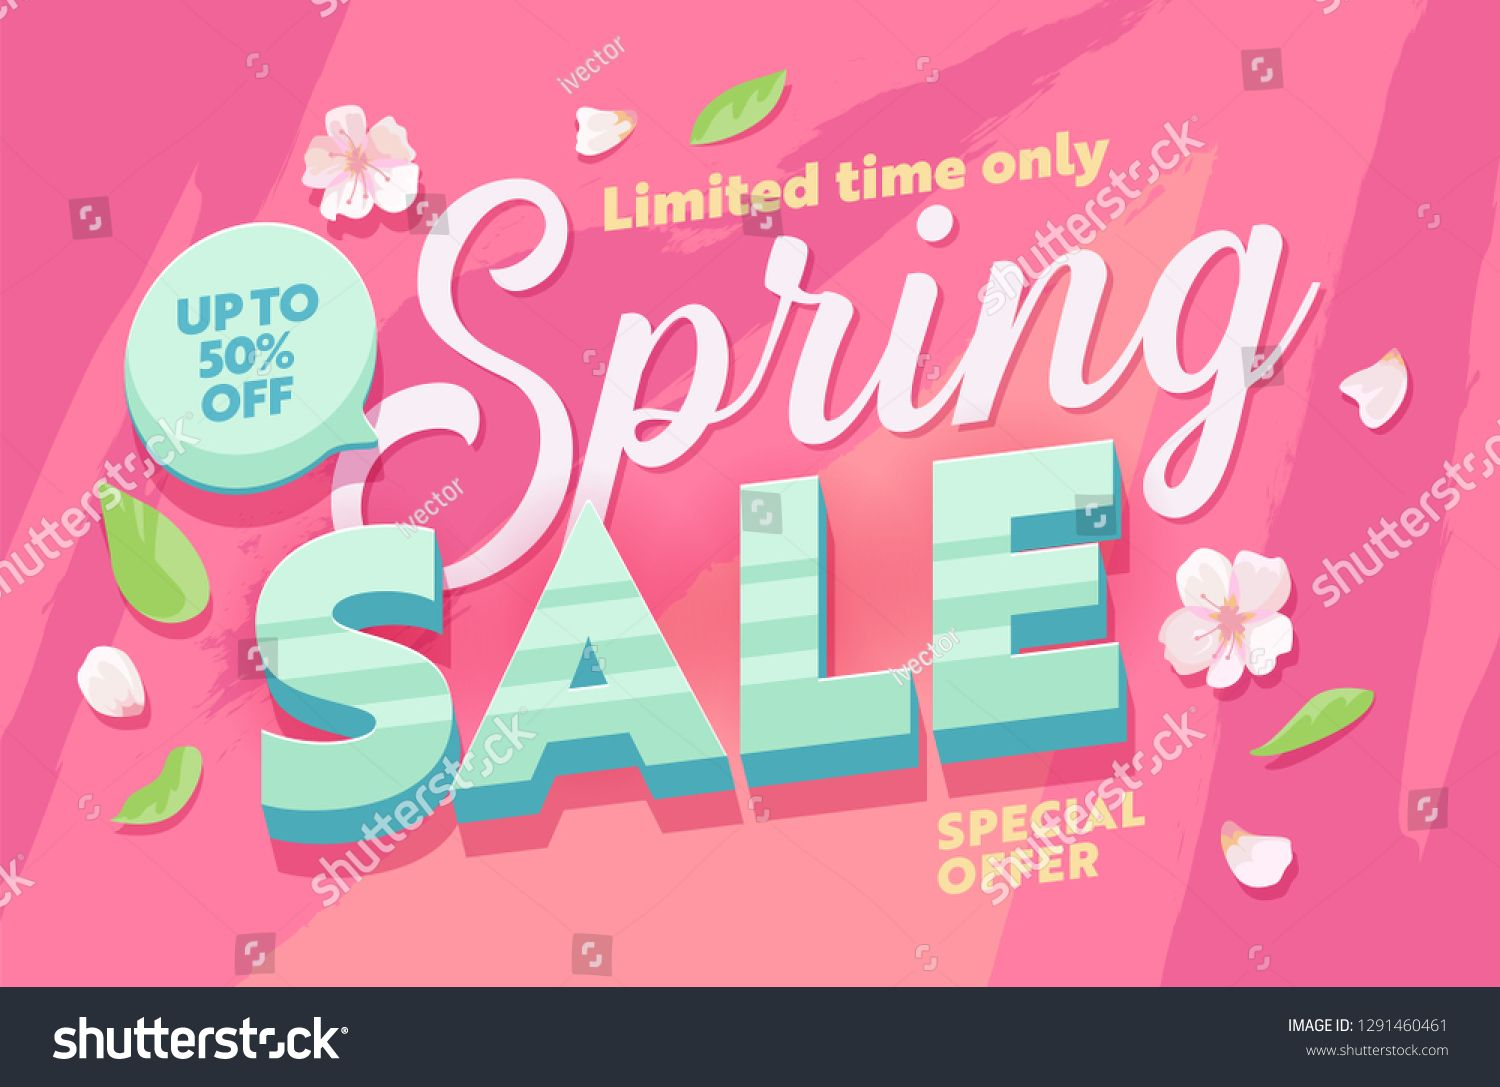 Spring Sale Abstract Flower Background Horizontal Banner. Promotion Discount Season Advertising Special Price Poster. Hot Deal Limited Offer Message Design Flat Vector Illustration ,